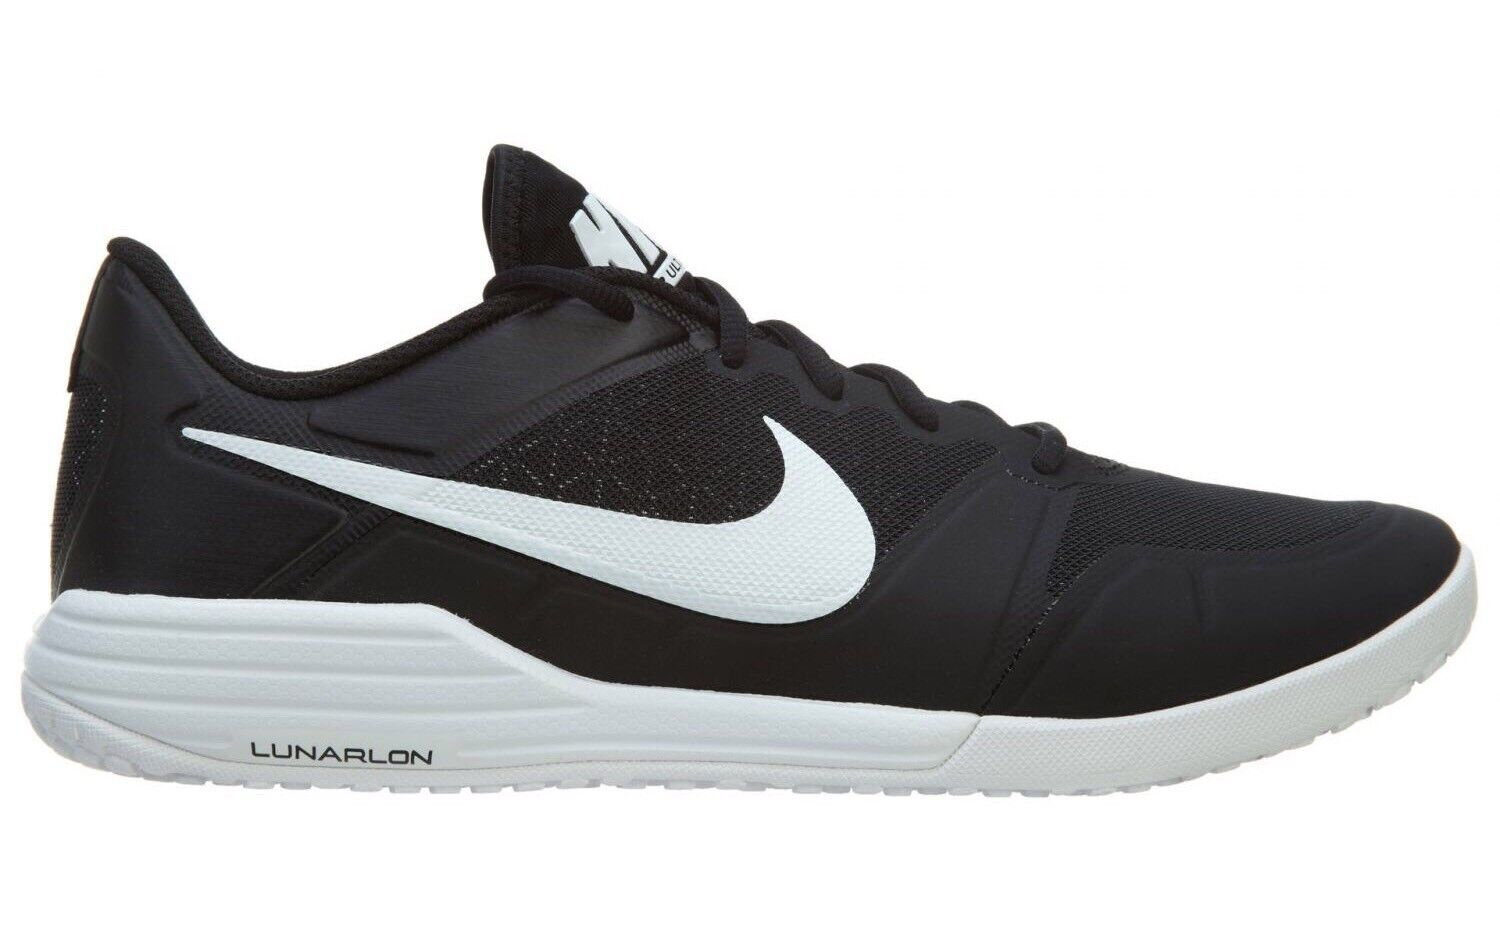 Nike Lunar Lunar Lunar Ultimate Train Mens Trainers Größe UK 10 (EUR 45) Brand New d44de7